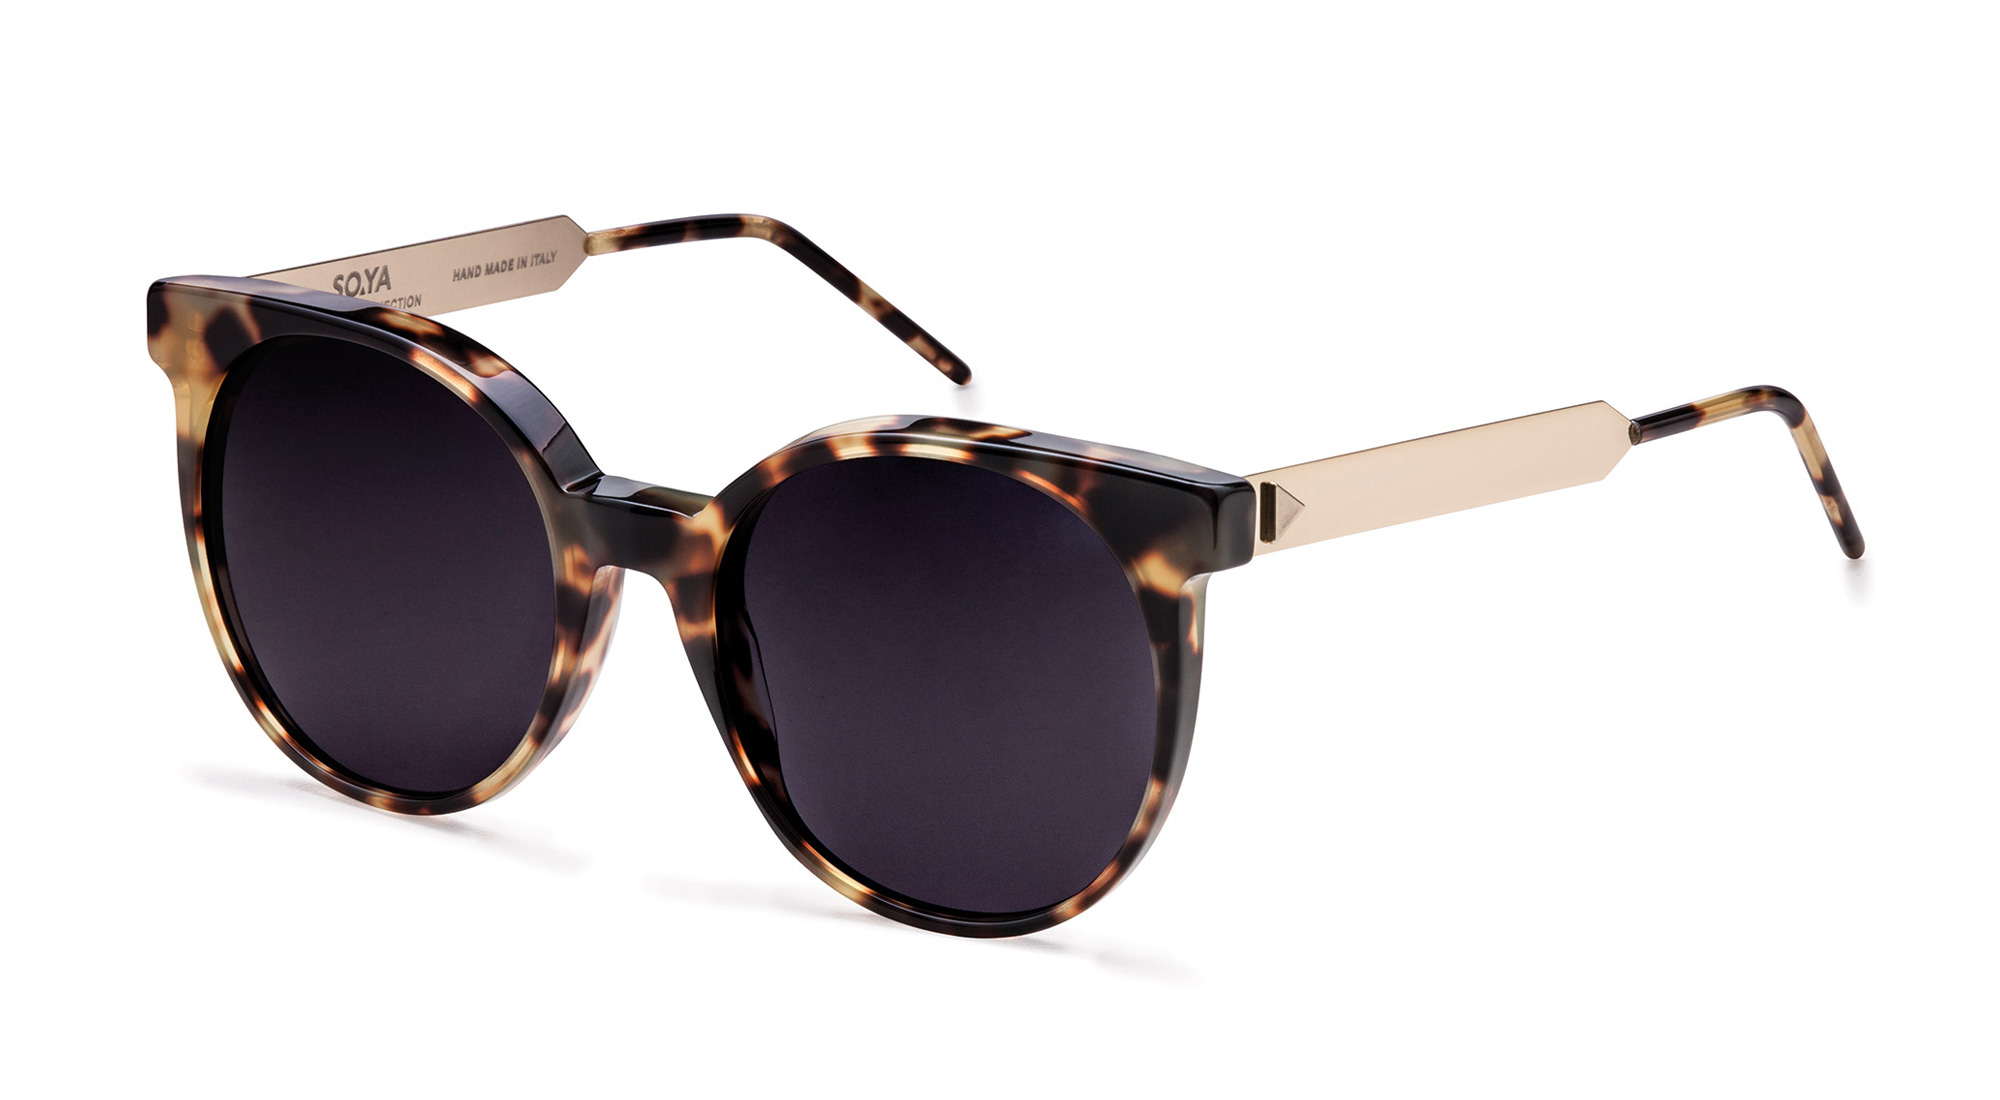 JULIETTE_Eyewear_SOYA_LightHavana_3-4View